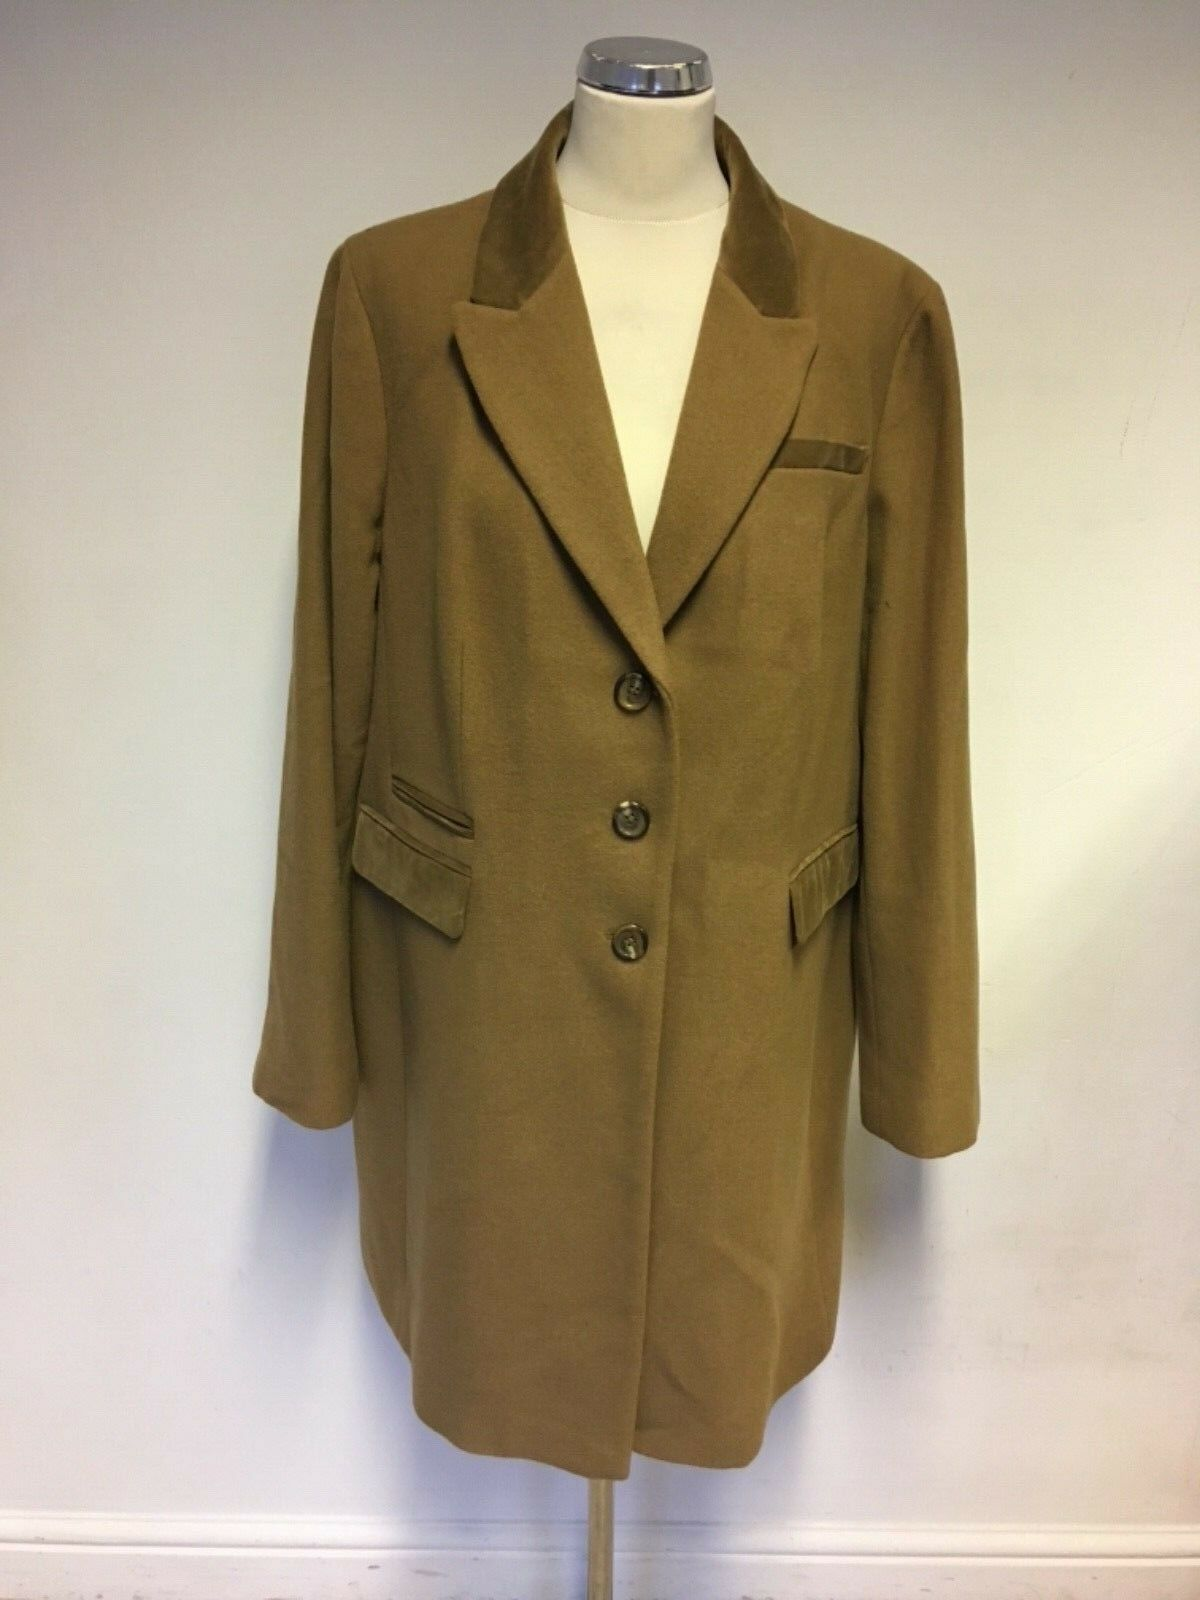 BRAND NEW BODEN CAMEL BUTTON FASTEN WOOL BLEND COAT SIZE 20